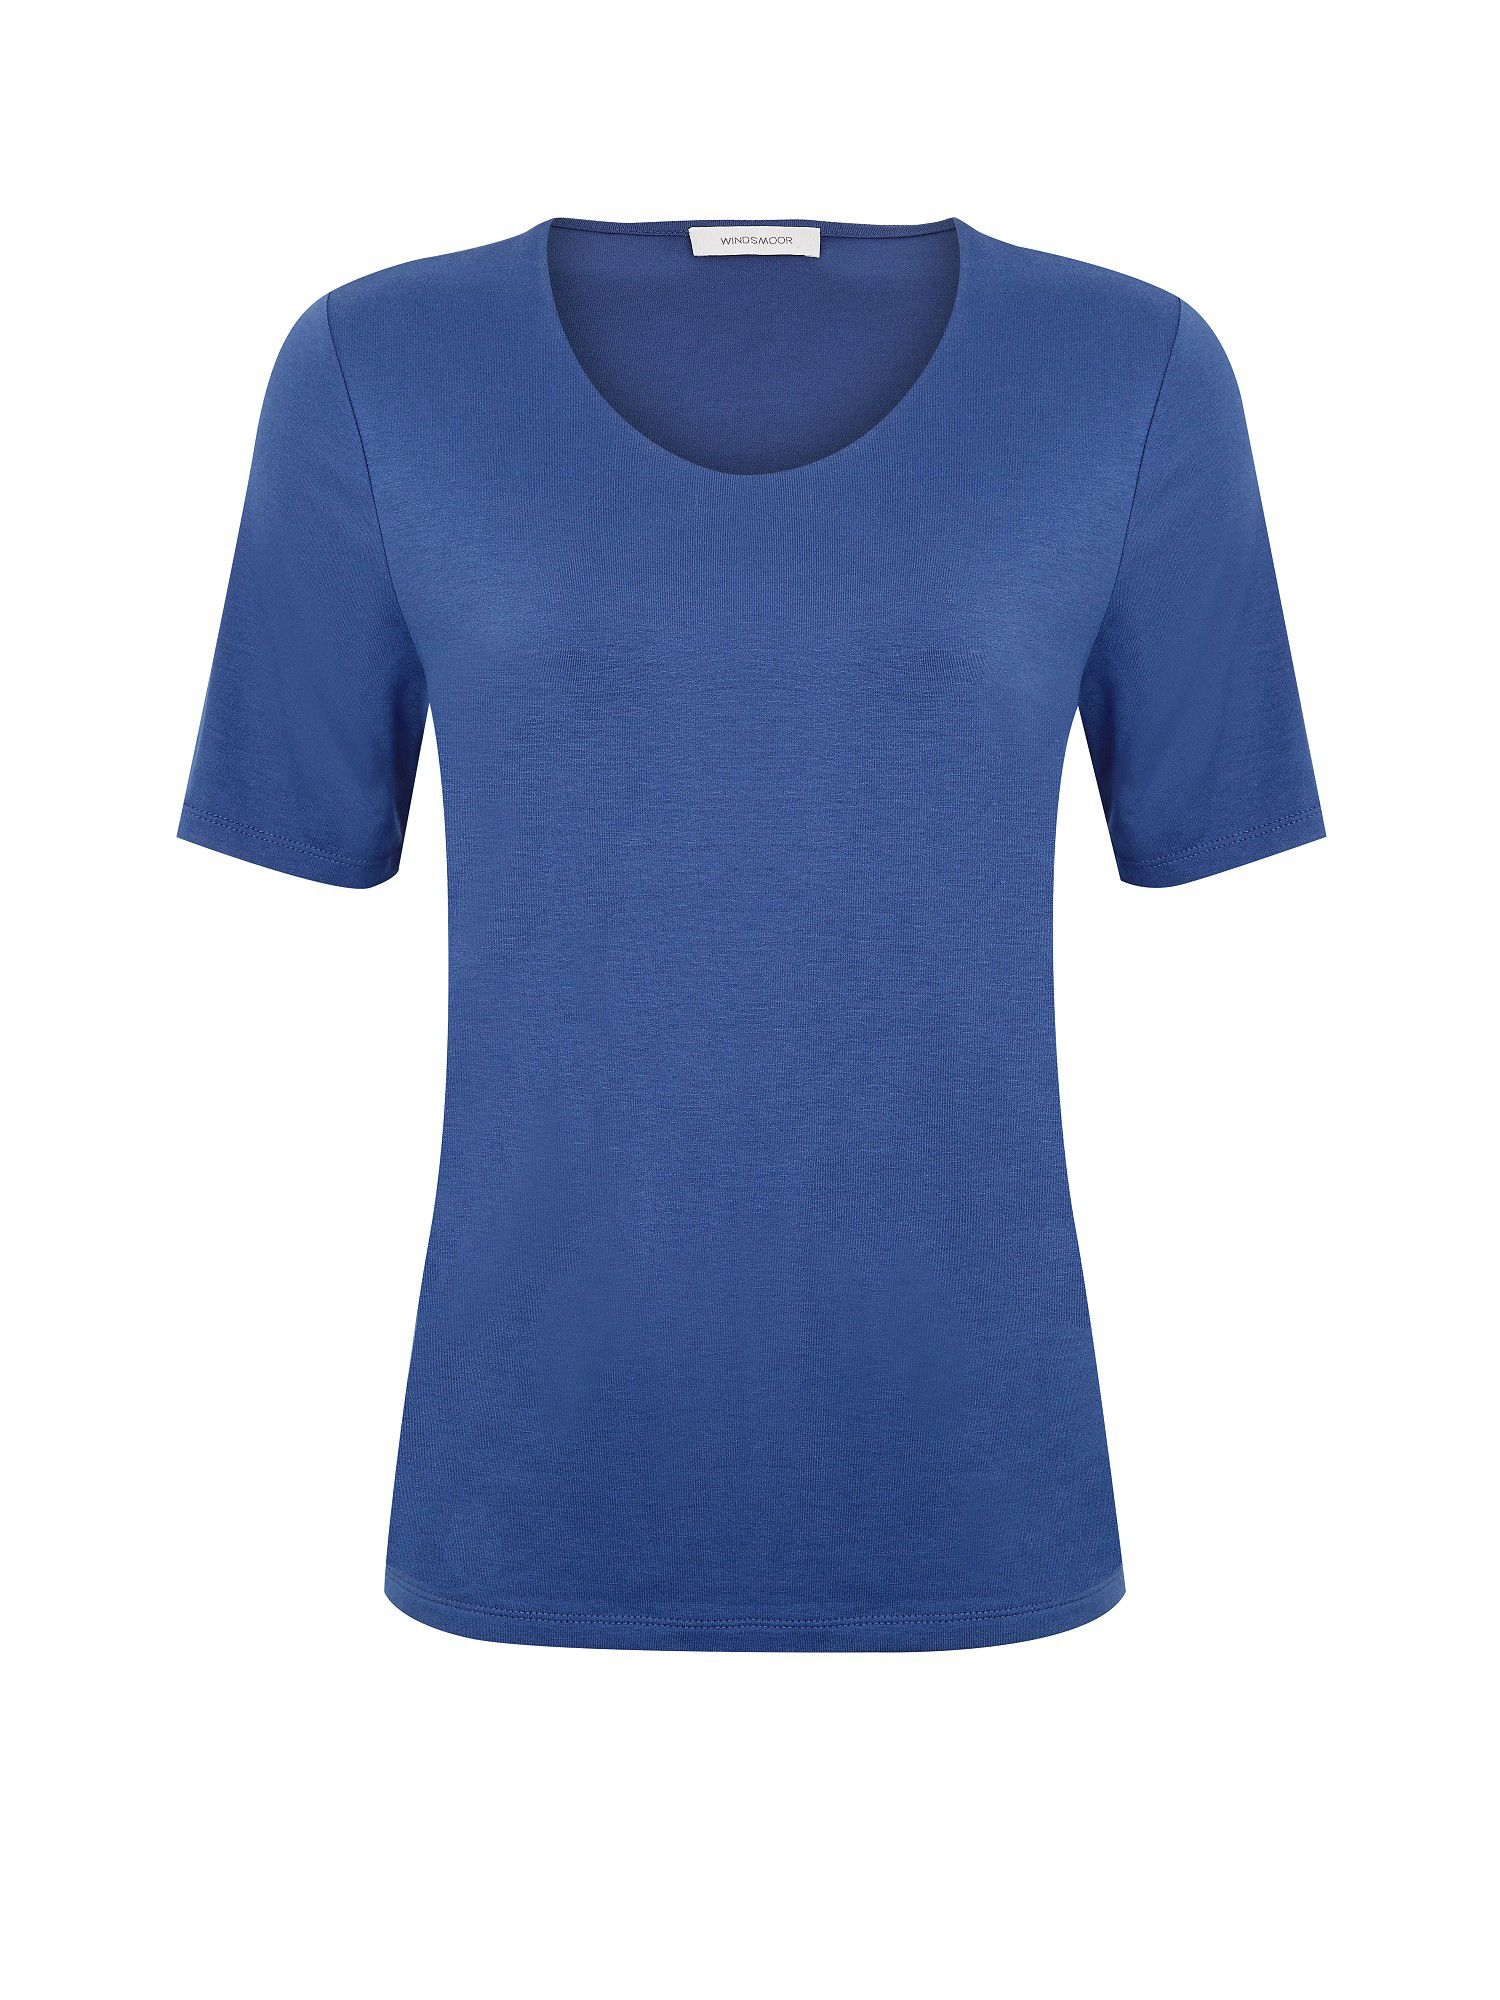 Basic indigo top